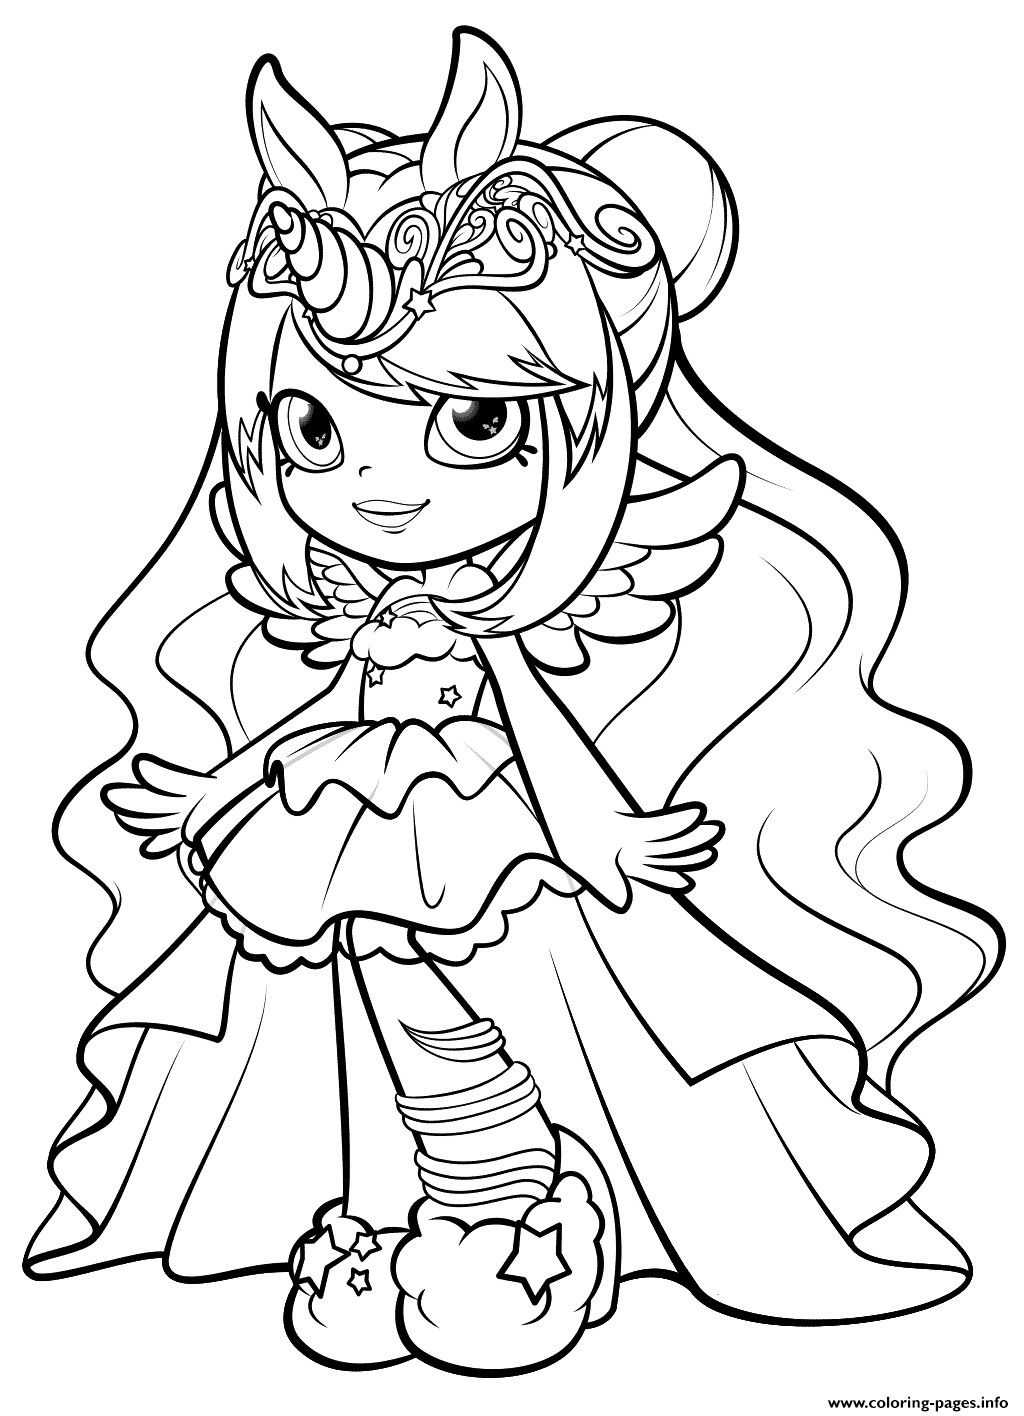 Best ideas about Coloring Pages For Girls Lds And Shopkins . Save or Pin Print Shopkins Mysterbella Wild Style Shoppies Doll Now.